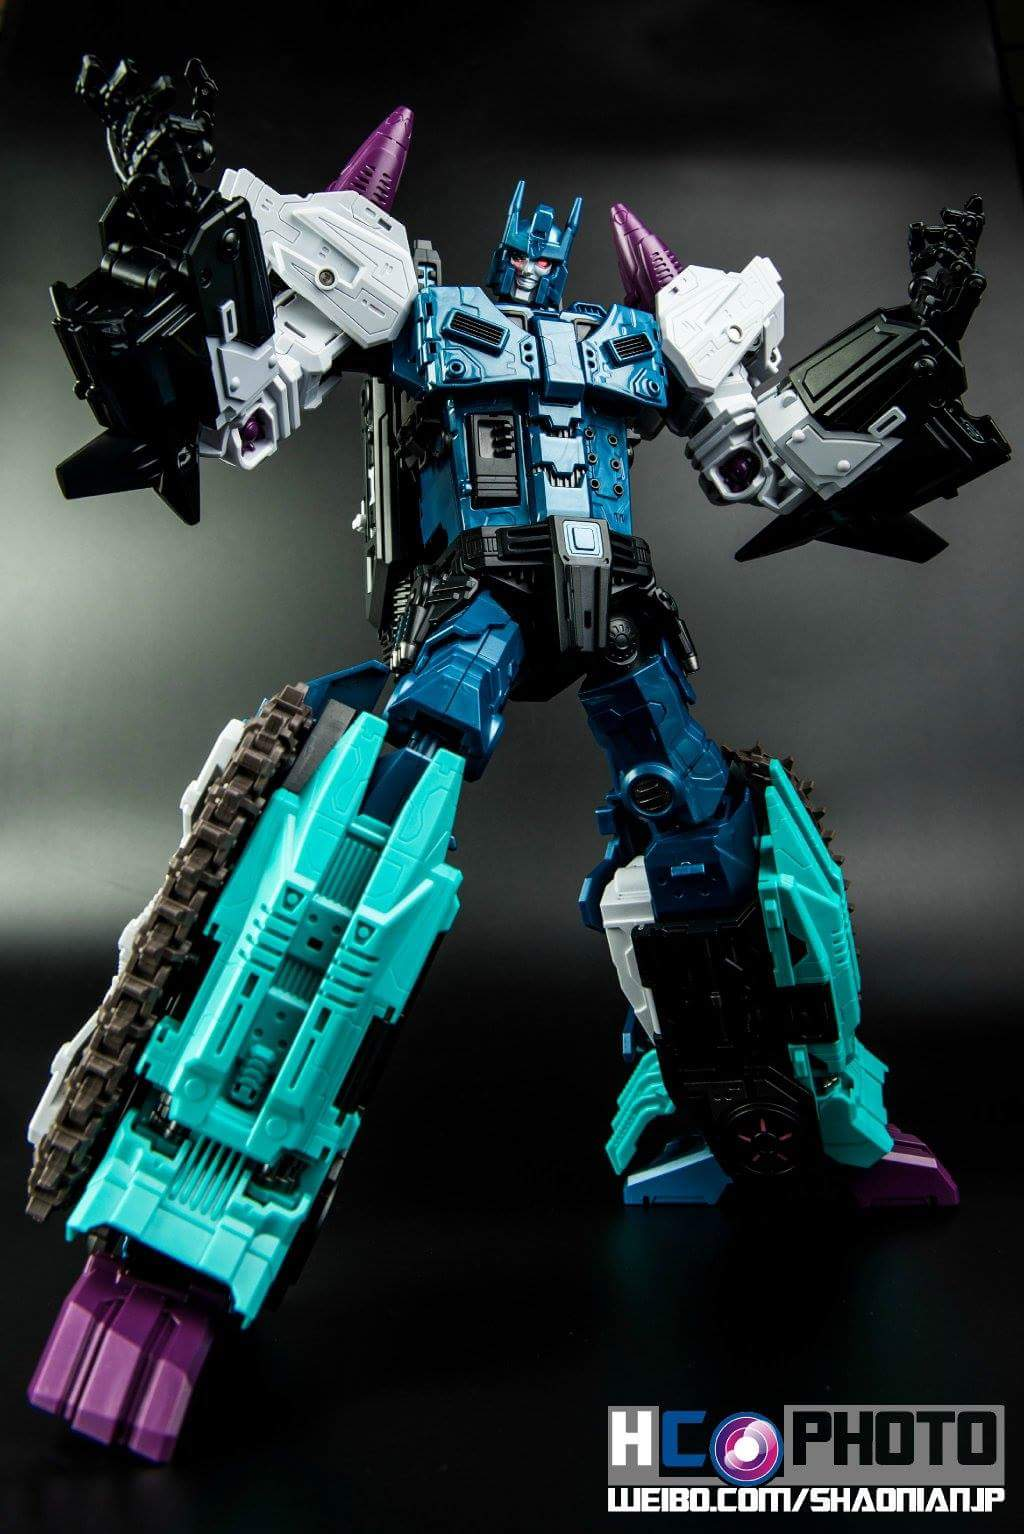 [Mastermind Creations] Produit Tiers - R-17 Carnifex - aka Overlord (TF Masterforce) - Page 3 8nK15ml4